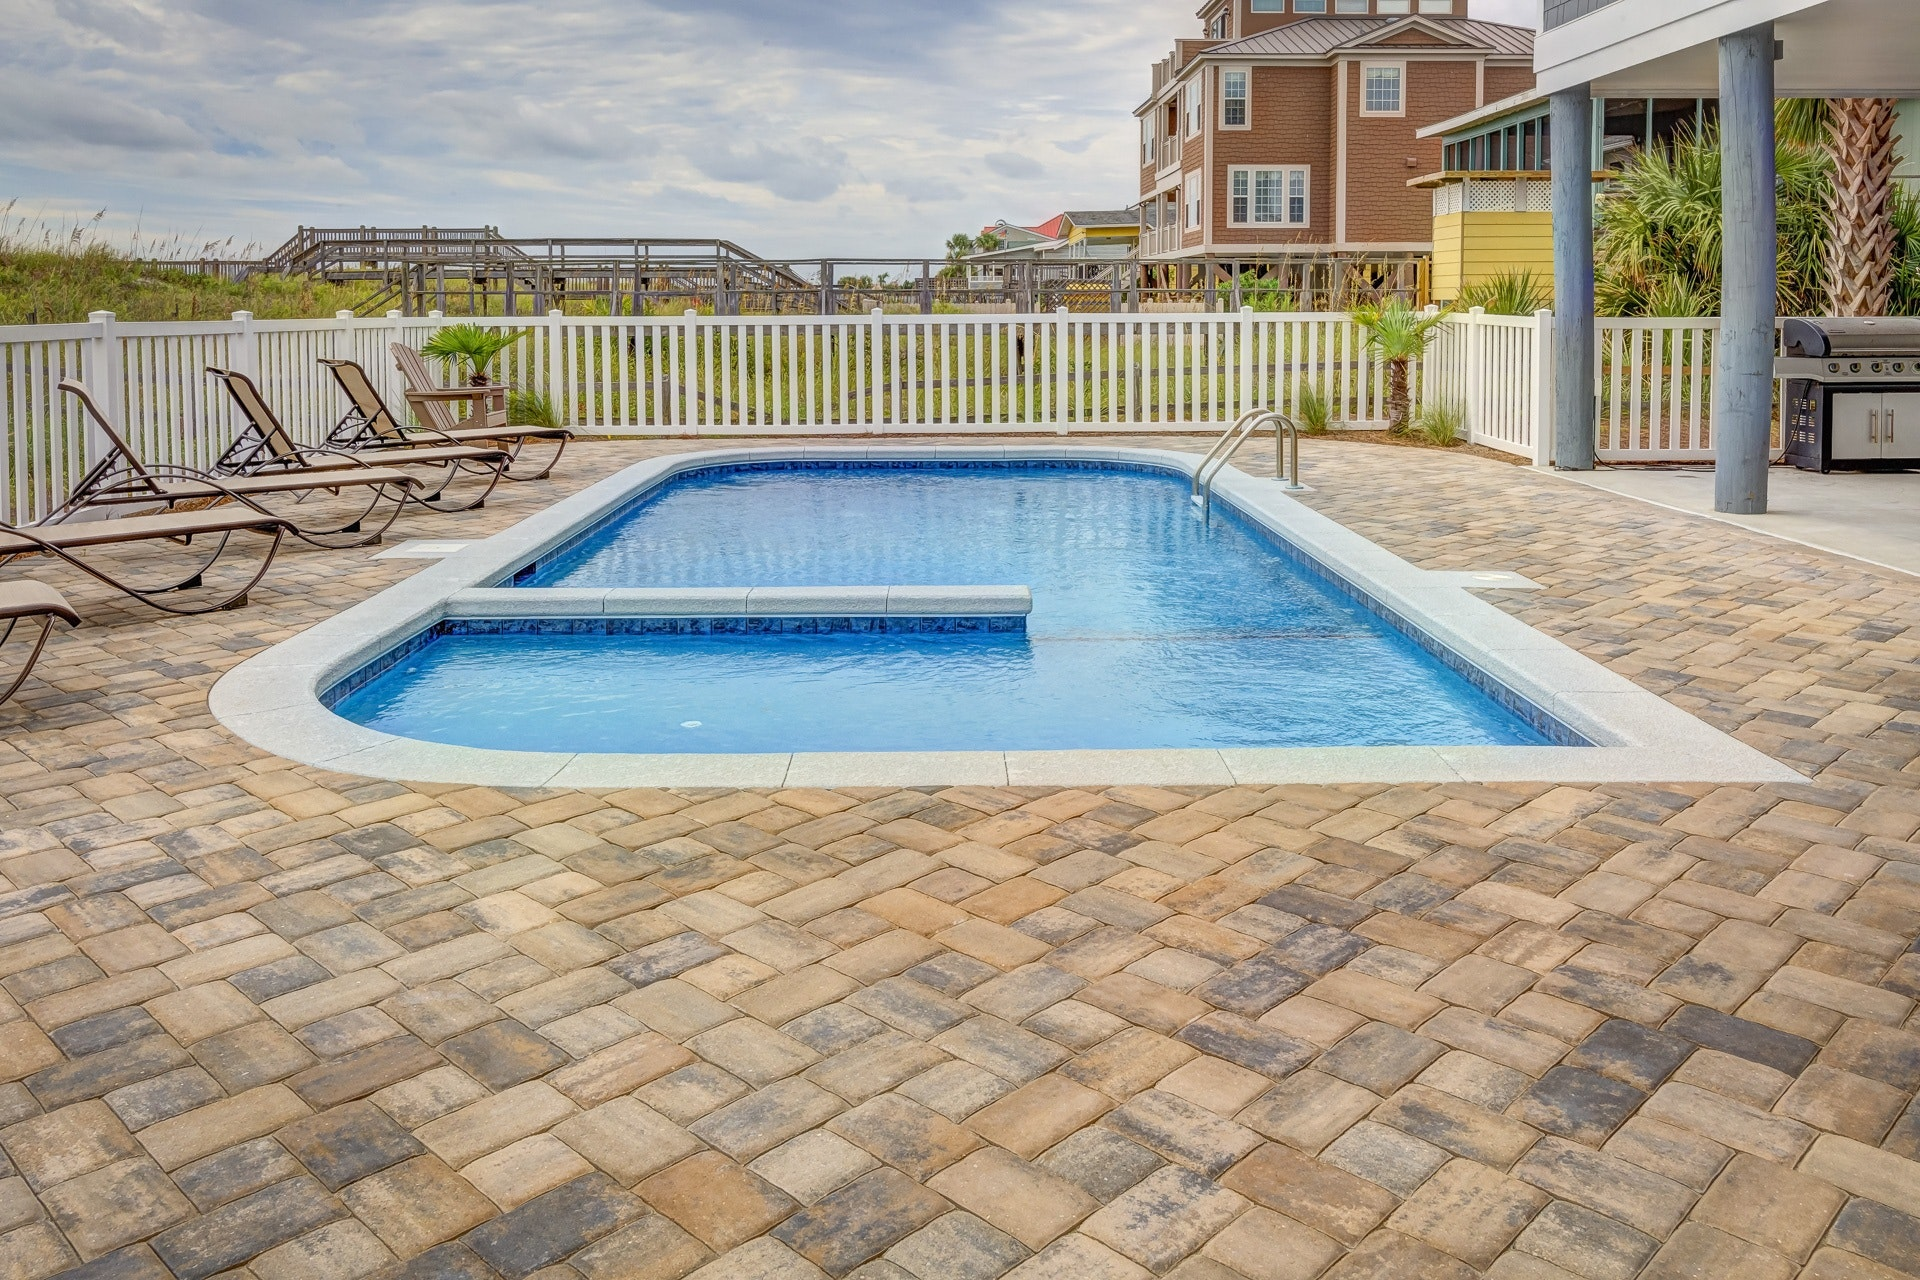 Tips to Maintain Your Home Pool